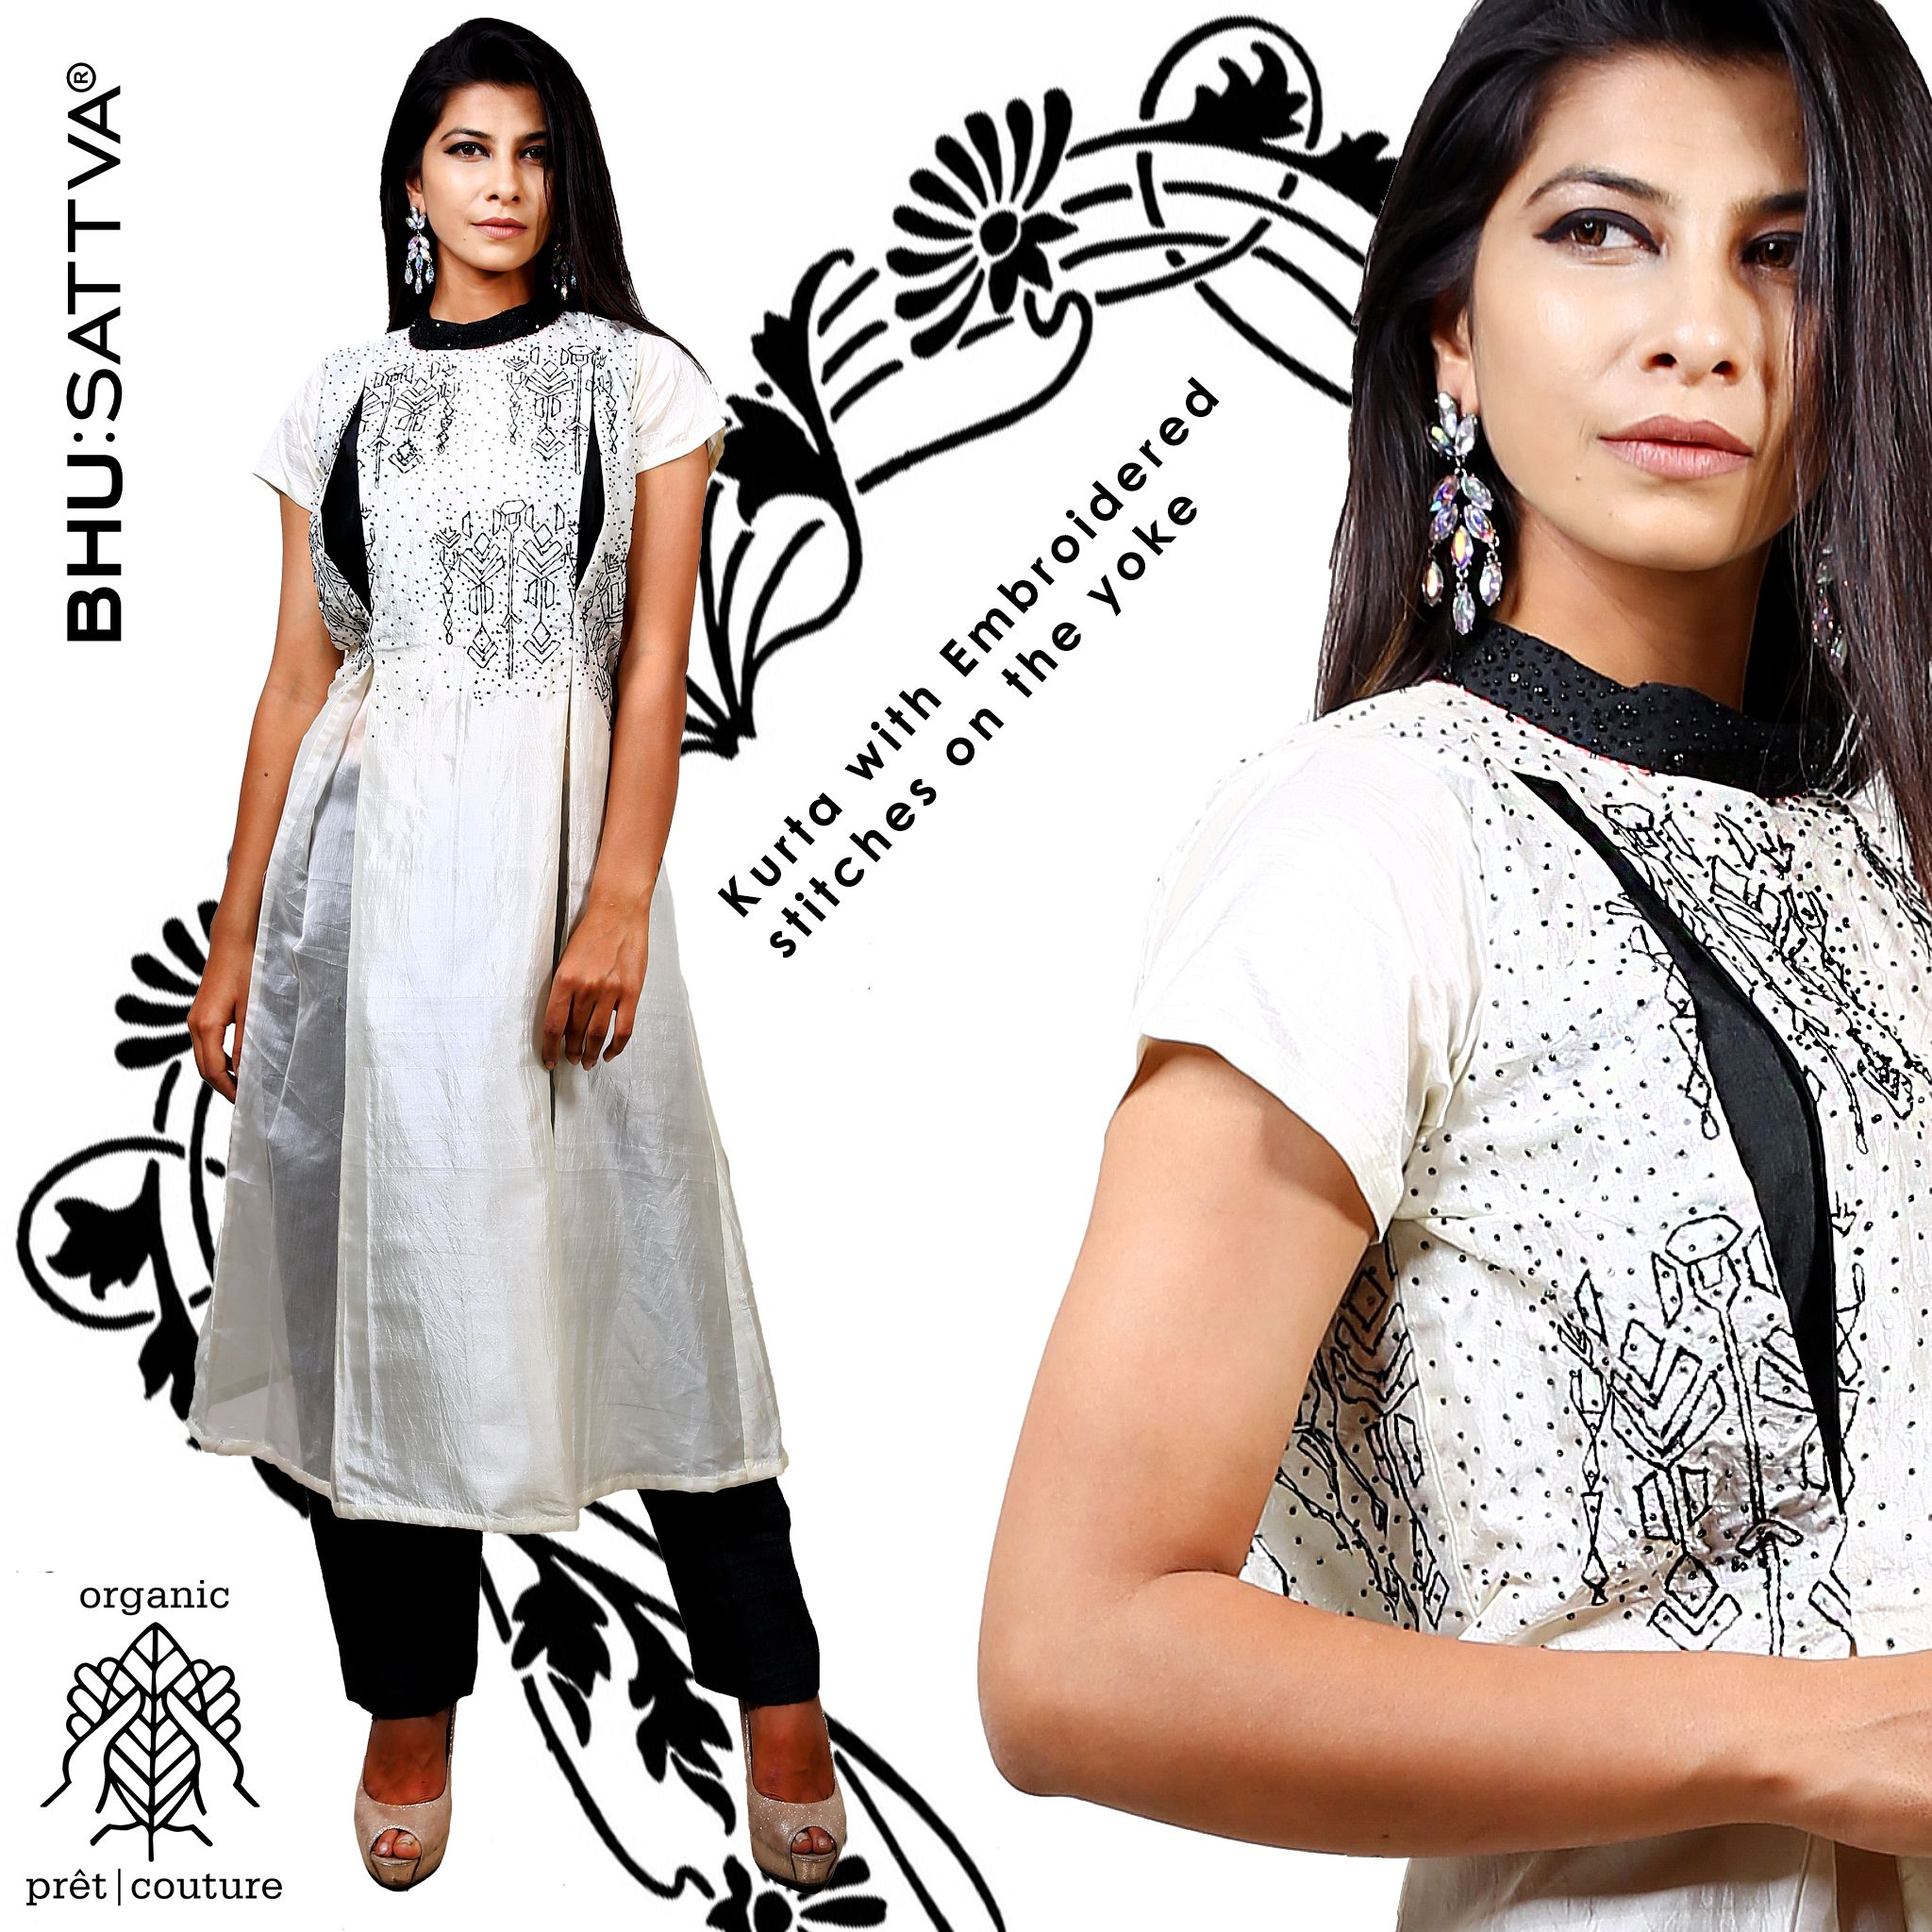 Embrace this soothing white classy dress with sequins all over from the house of #Bhusattva #Organic #Pret #Couture #WhiteDress #Sequins #HandEmbroidered #SkinFriendly #BreatheEasy #ReflectOrganic #RevealYourself #iWearBhusattva #BelieveWhatYouWear #TrustNature #MysticalNature #CloseToNature #OrganicIdeology #OrganicCollection #NaturalDyes #EcoFashion #OrganicFashion #SustainableFashion #GoOrganic #WearOrganic #DesignerLabel #DesignerWear #EcoFriendly